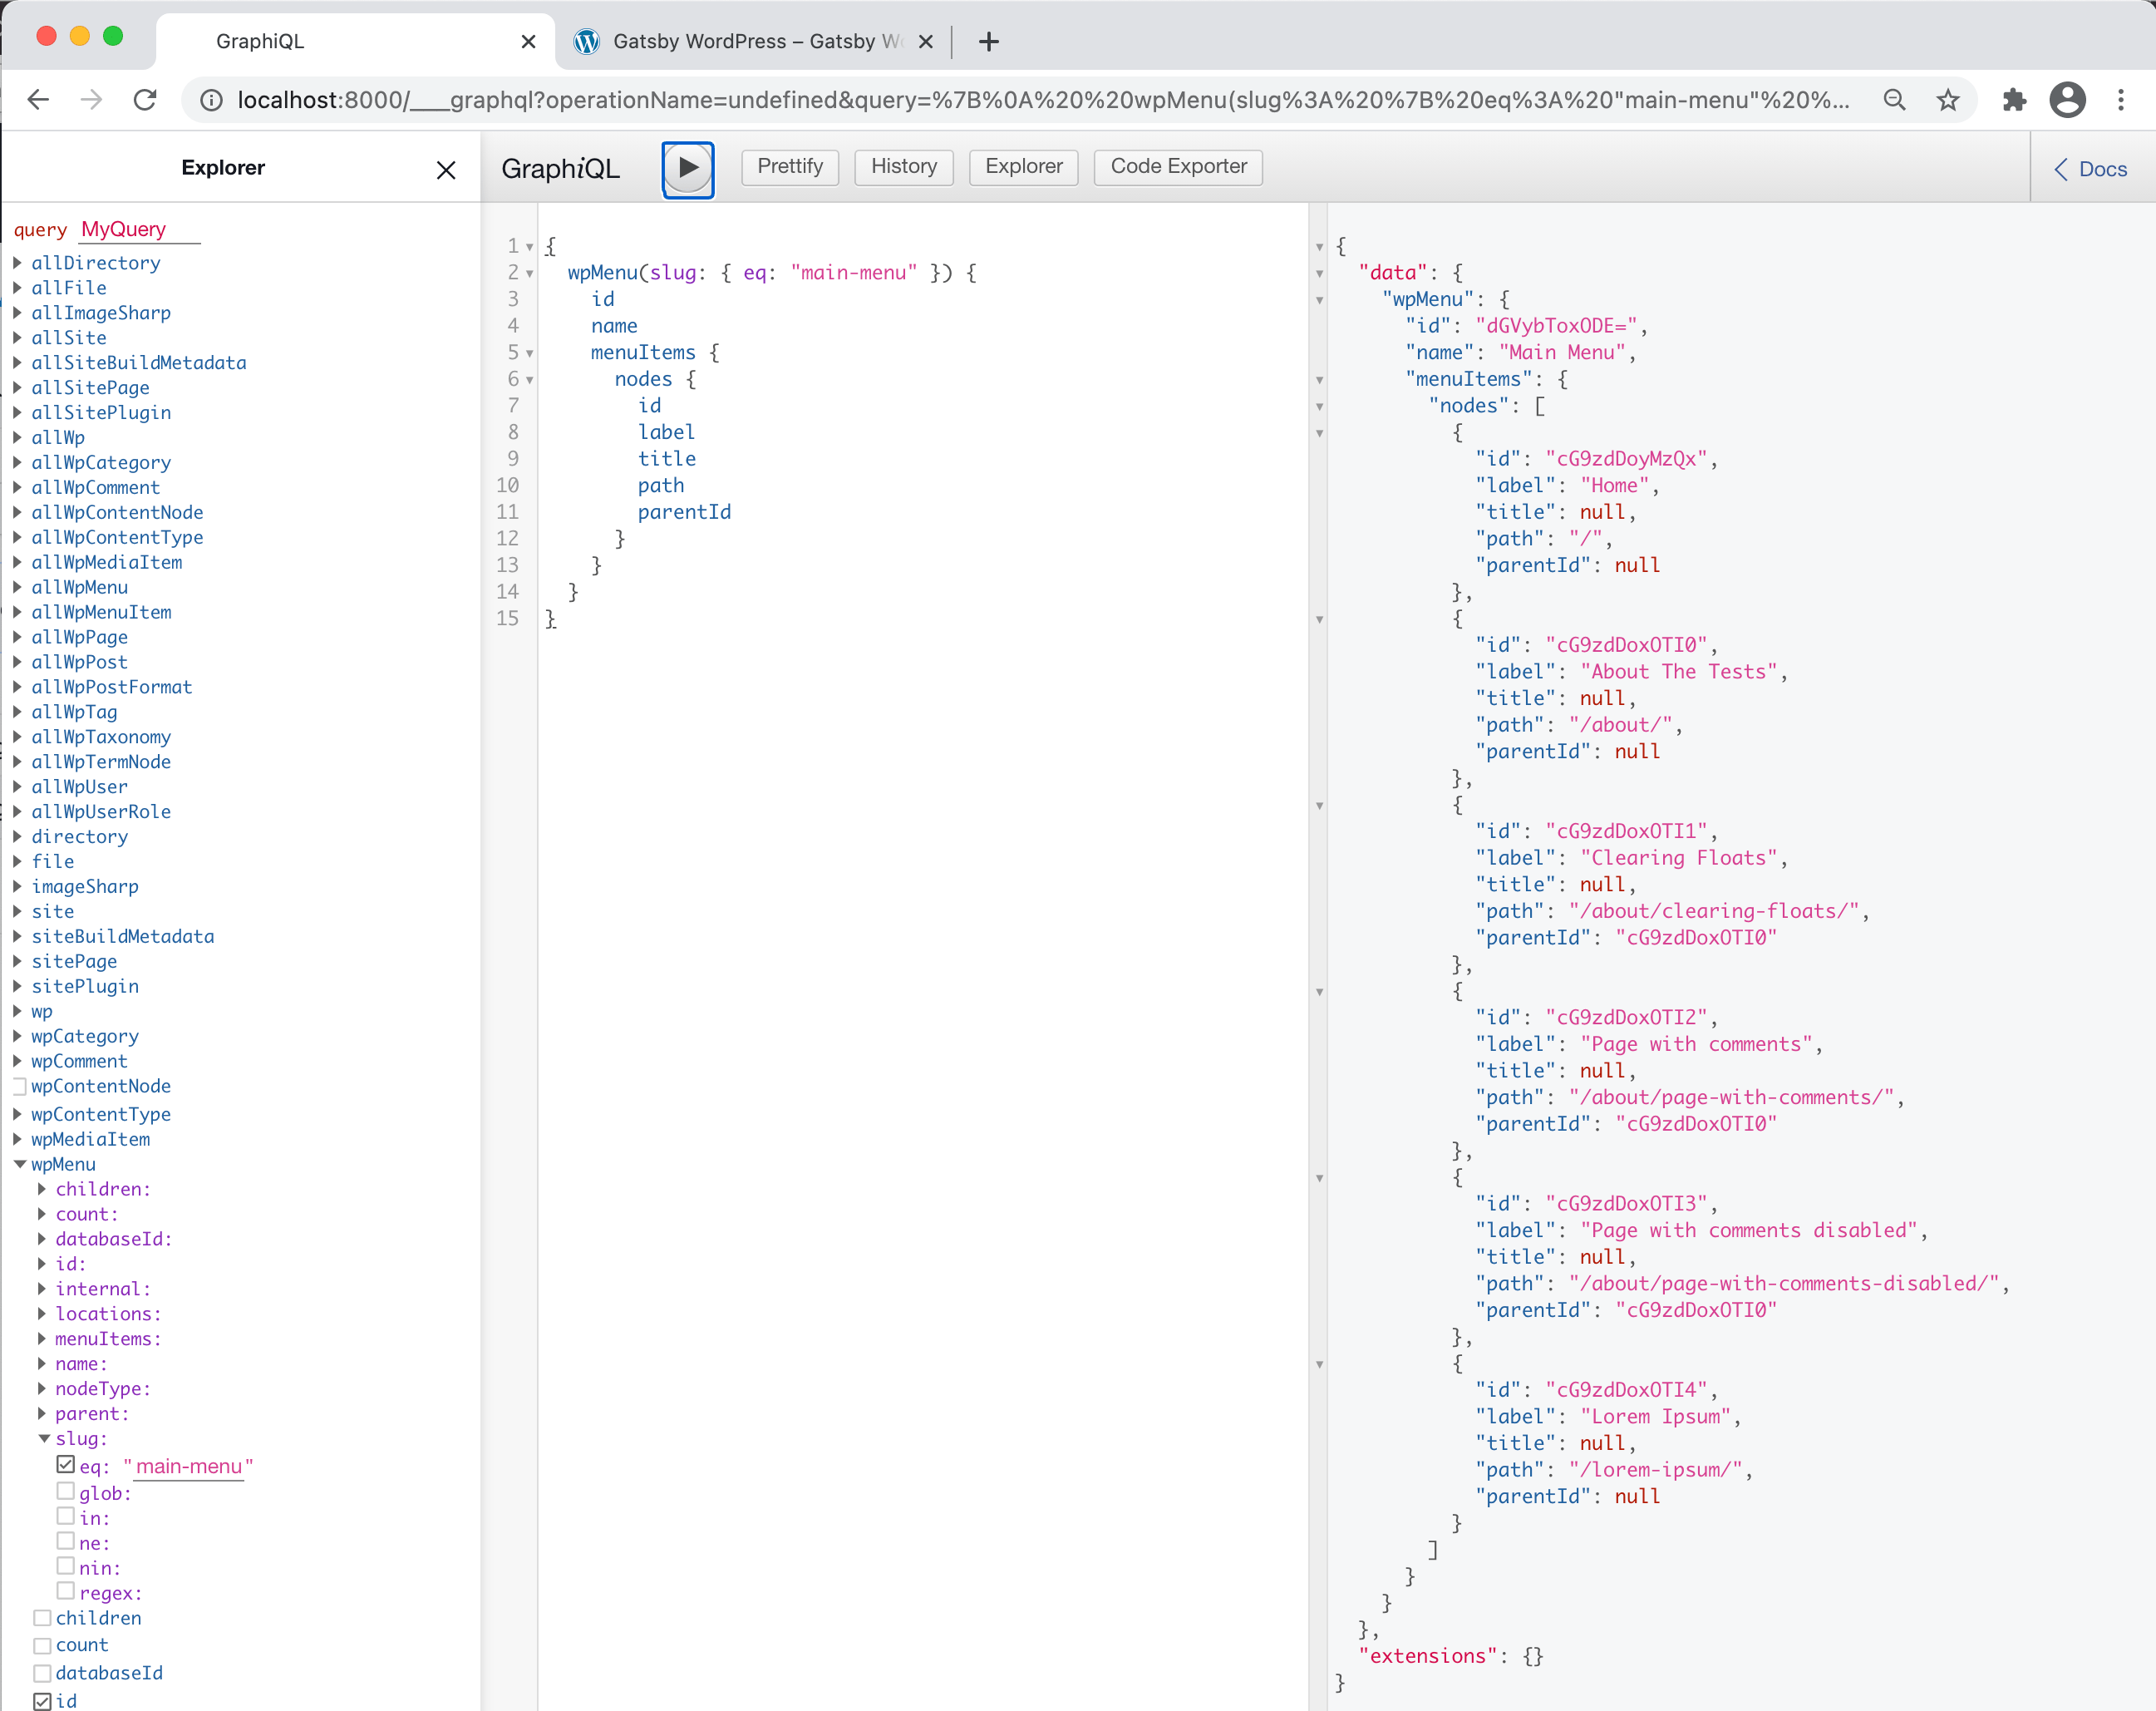 The GraphiQL UI showing three panels, one for the Explorer, one for the GraphiQL query, and one that displays the returned data from the query.